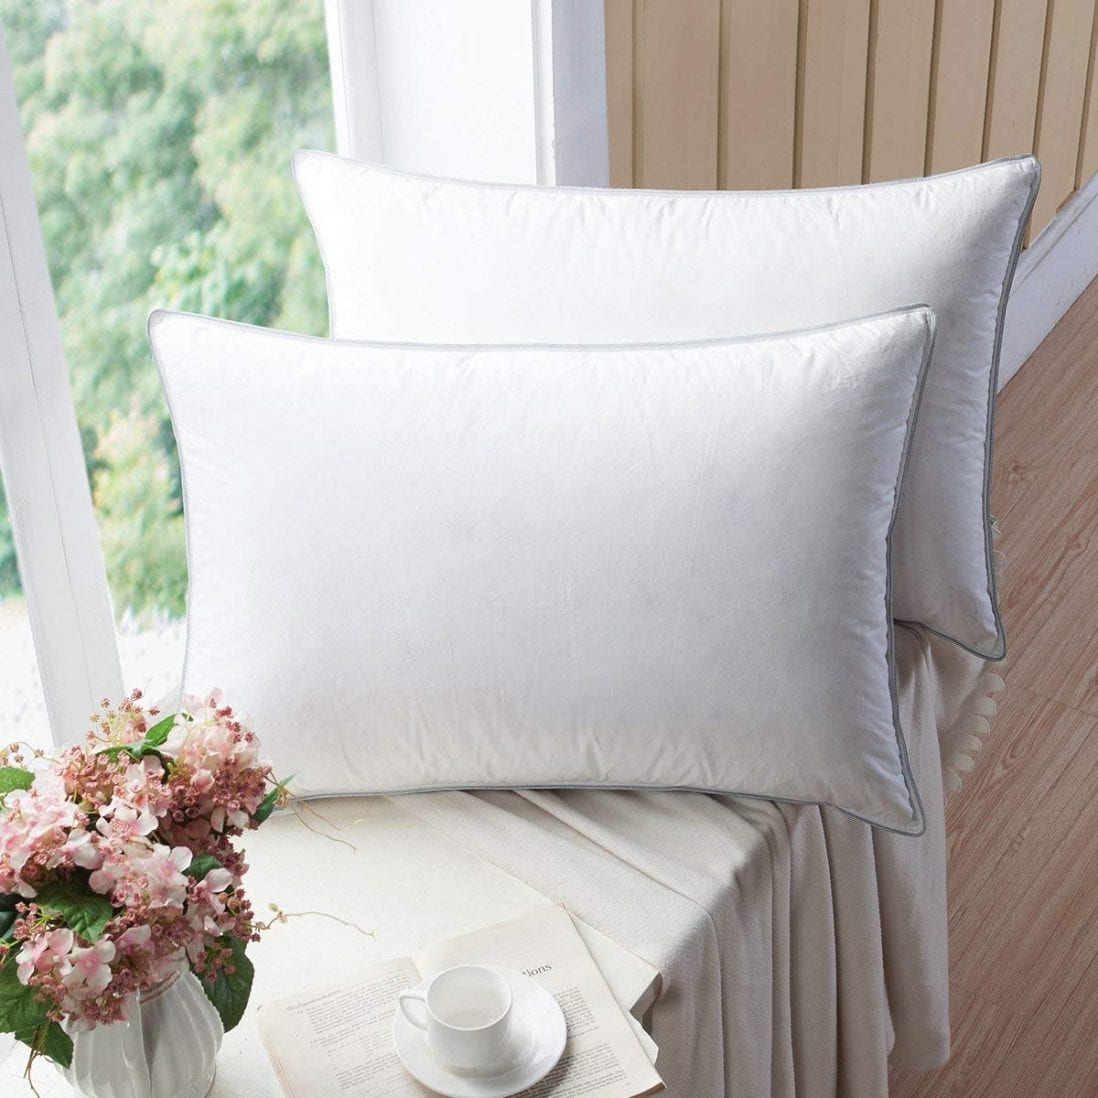 WENERSI best pillows Review and Buying Guide by www.dailysleep.org